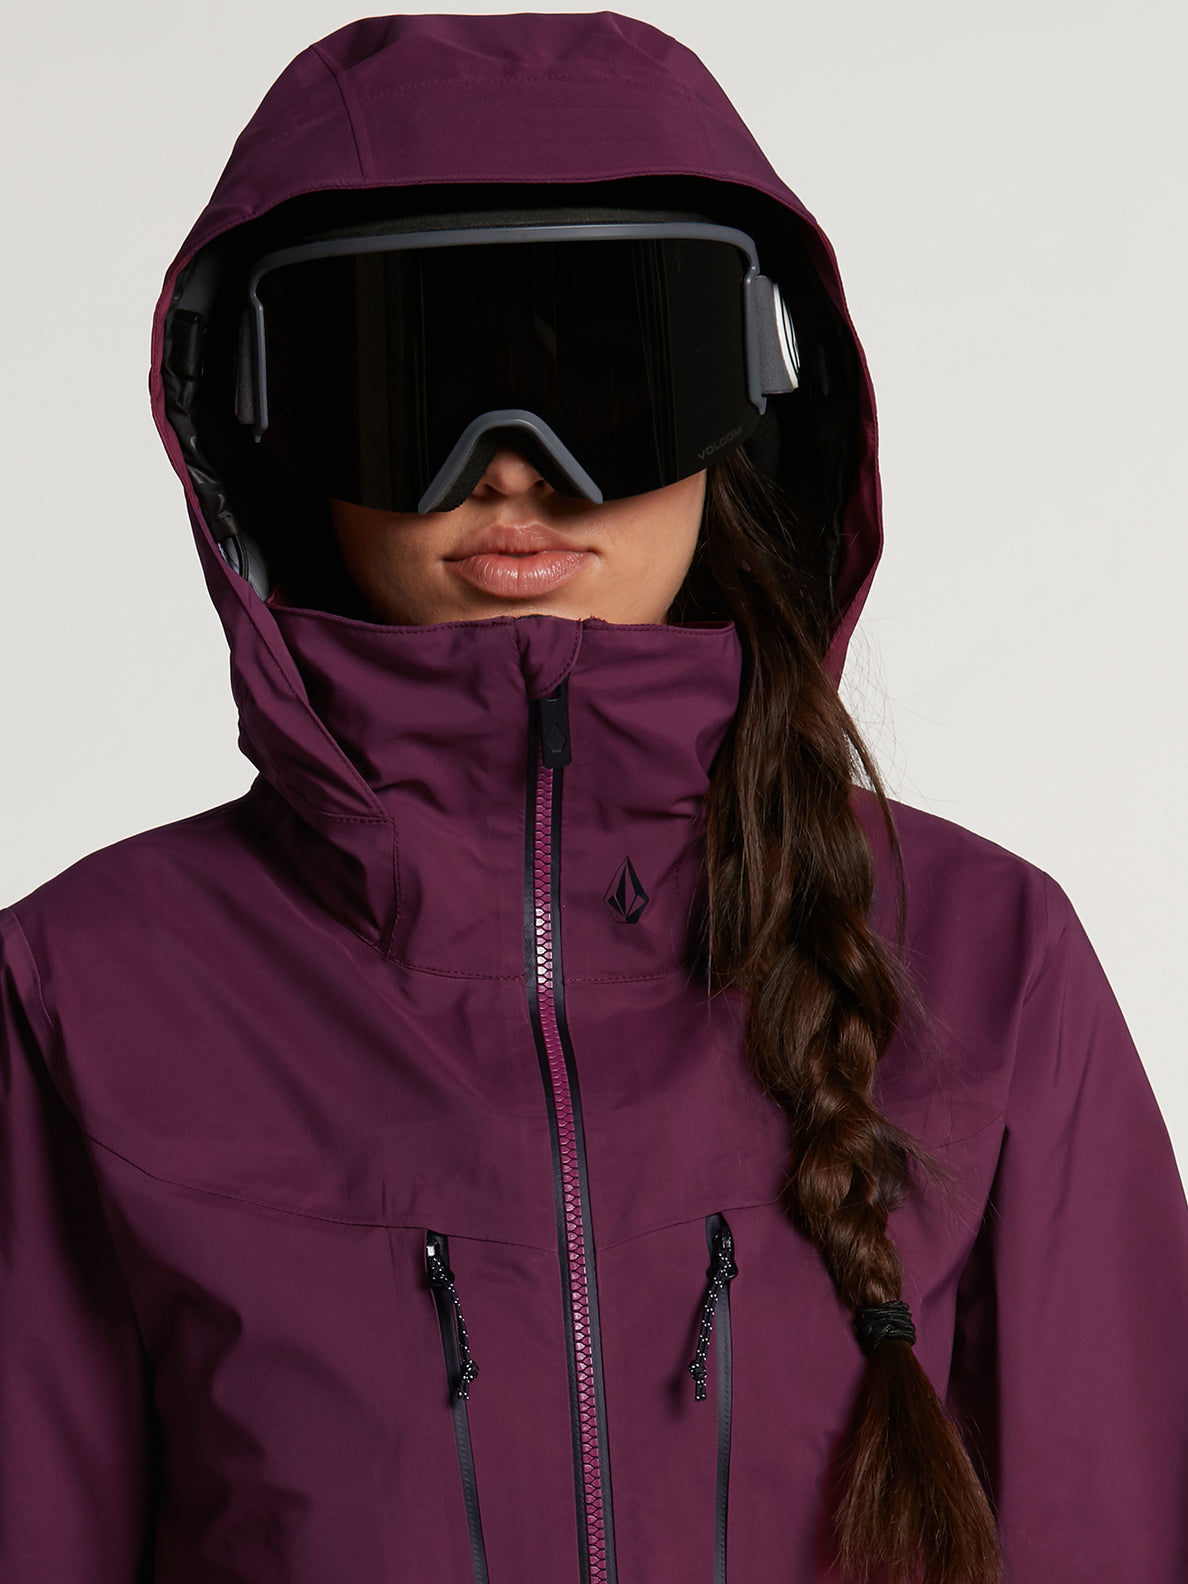 Womens VS Stretch GORE-TEX Jacket - Vibrant Purple (H0652103_VIB) [7]